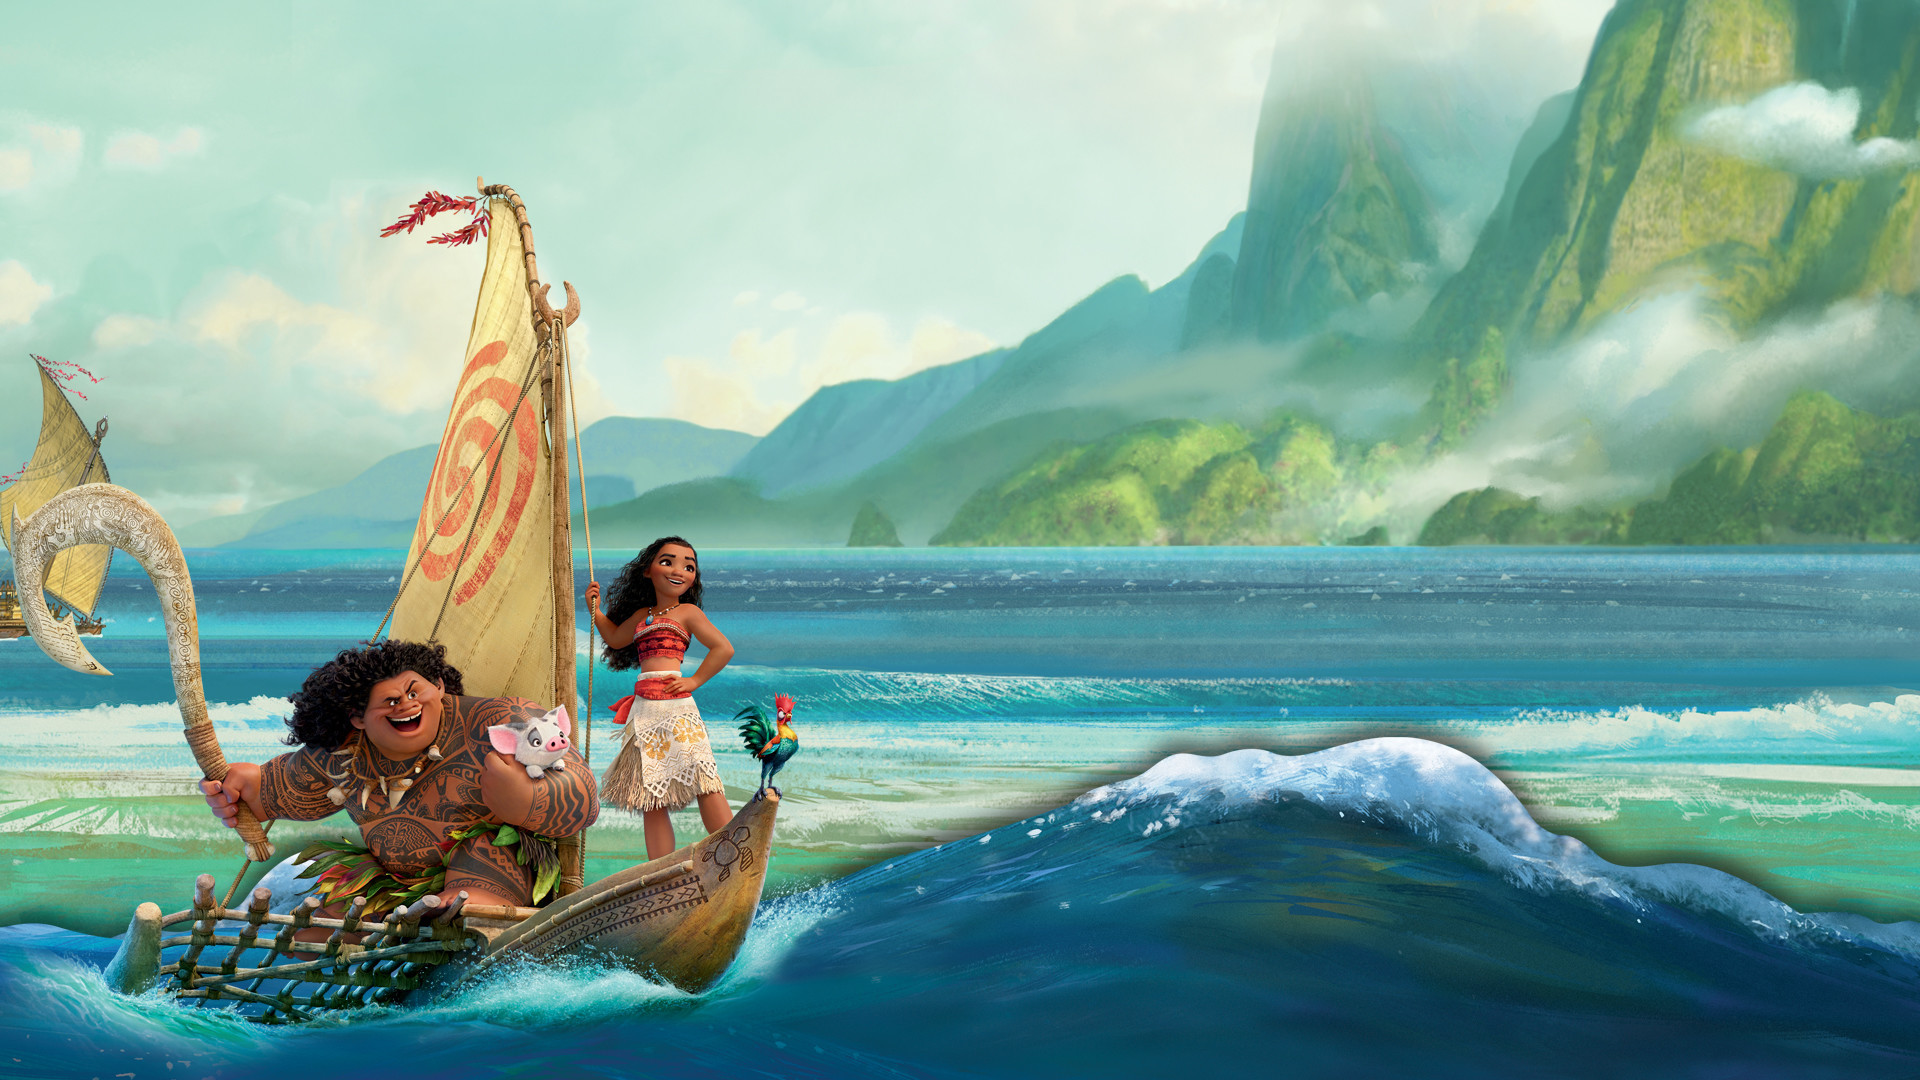 moana movie wallpapers 59 images